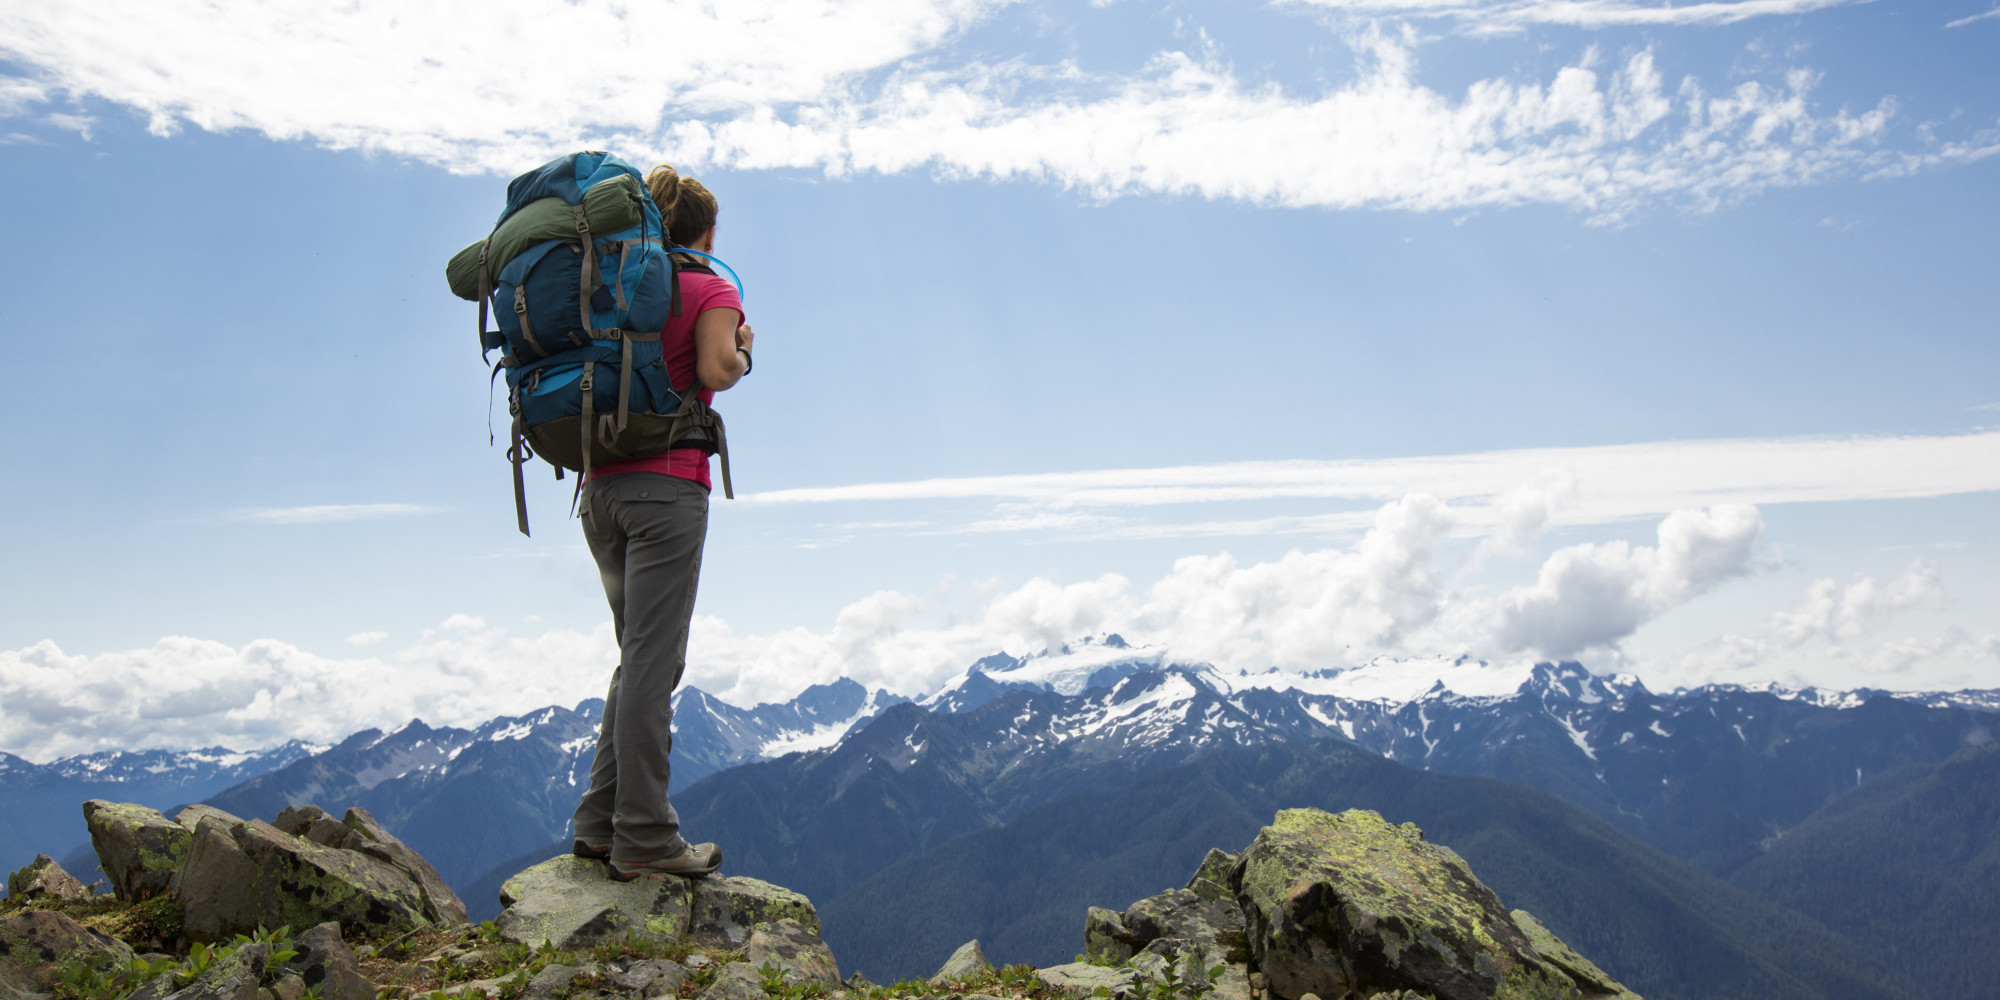 Study Suggests 'Extraordinary Experiences' Might Make You